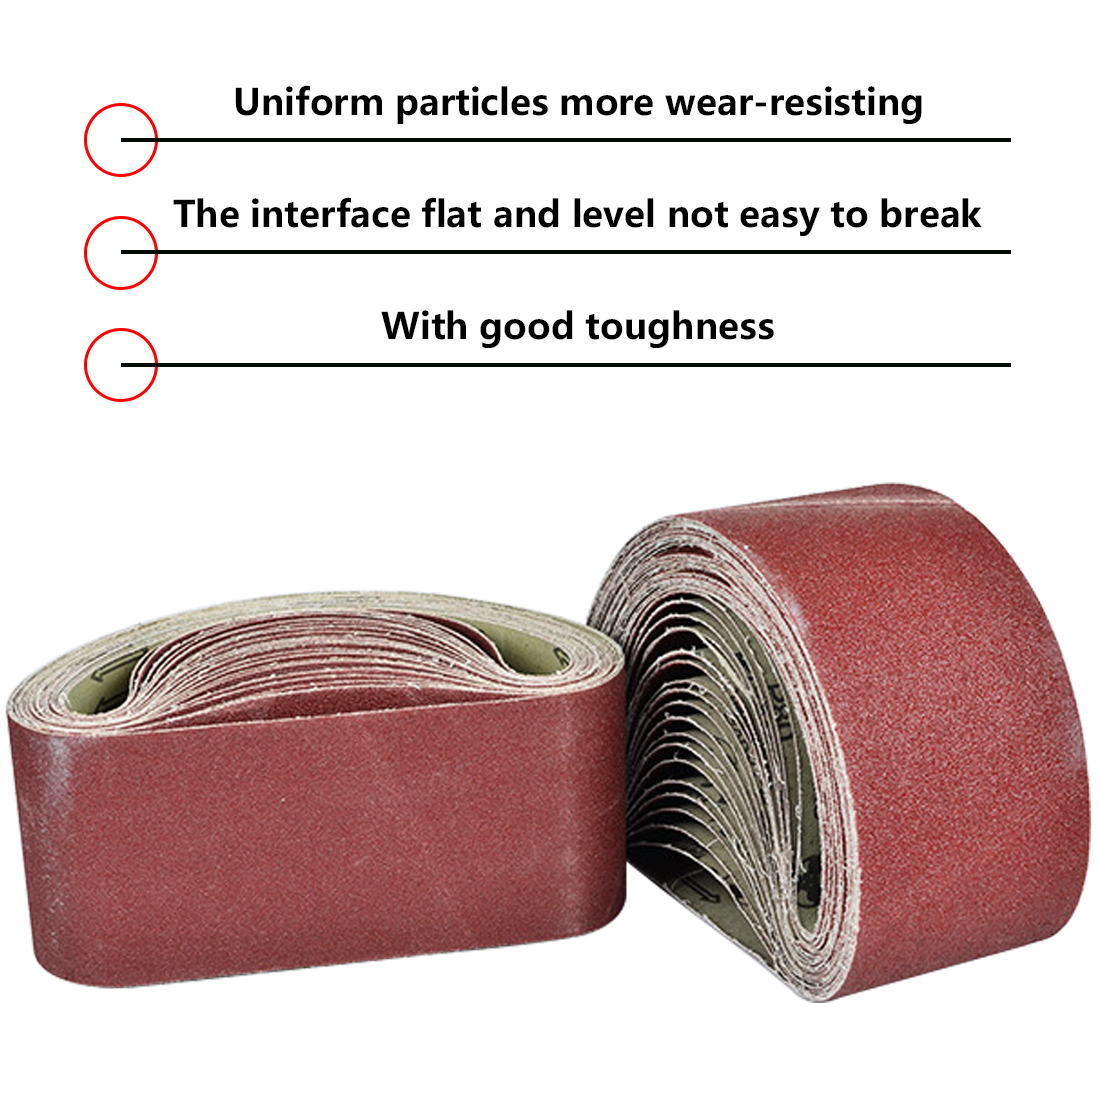 Tools Abrasive Tool 60-600 Grits Sandpaper Sanding Belts Abrasive Bands For Sander Power Rotary Tools Dremel Accessories